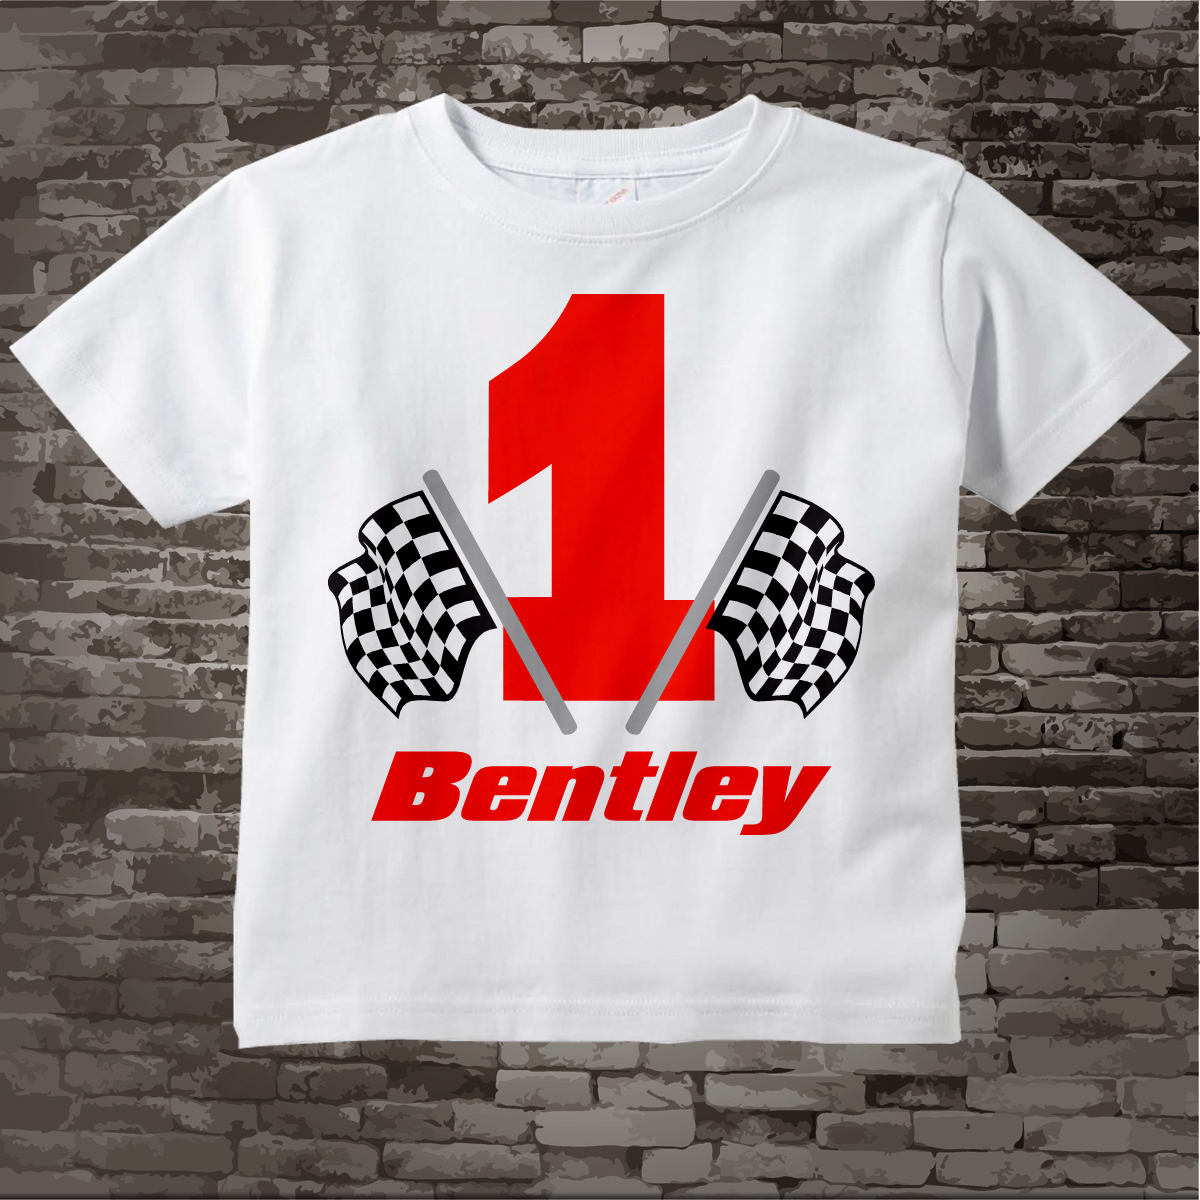 1 Year Old Birthday First Outfit Boy Checkered Flag Racer Shirt Personalized Racing Theme 05252012b Gallery Photo